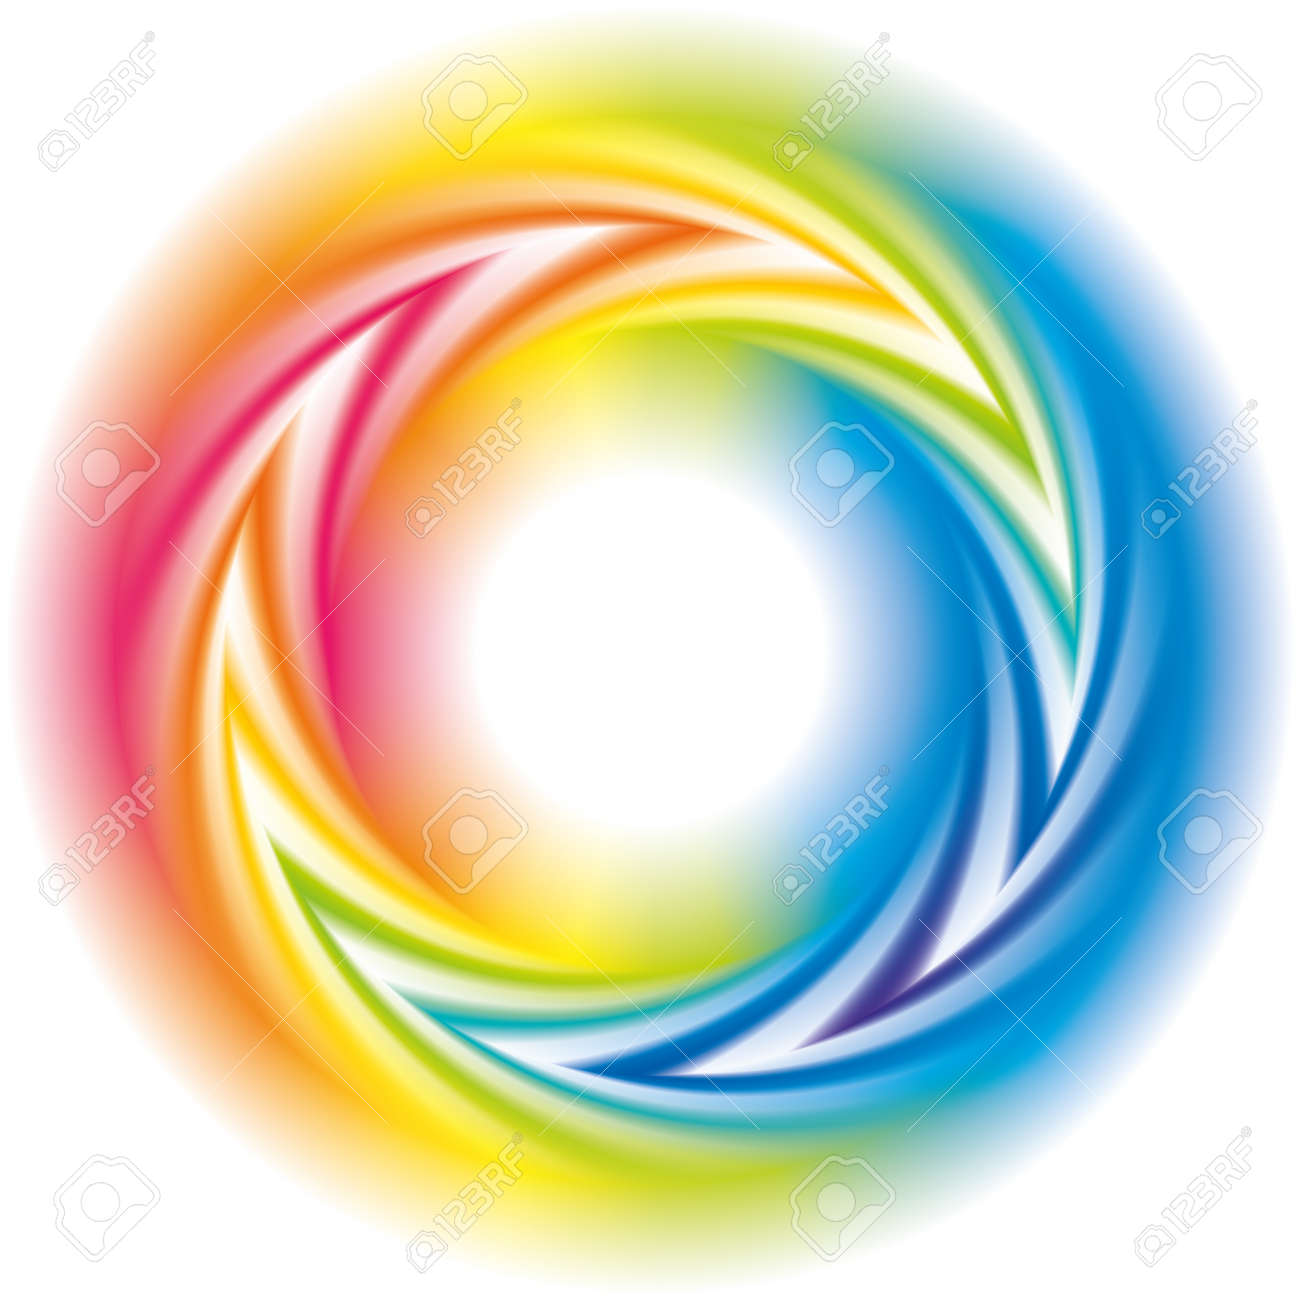 Abstract colorful background. Vector frame of the spiral curled rainbow spectrum - 156656601